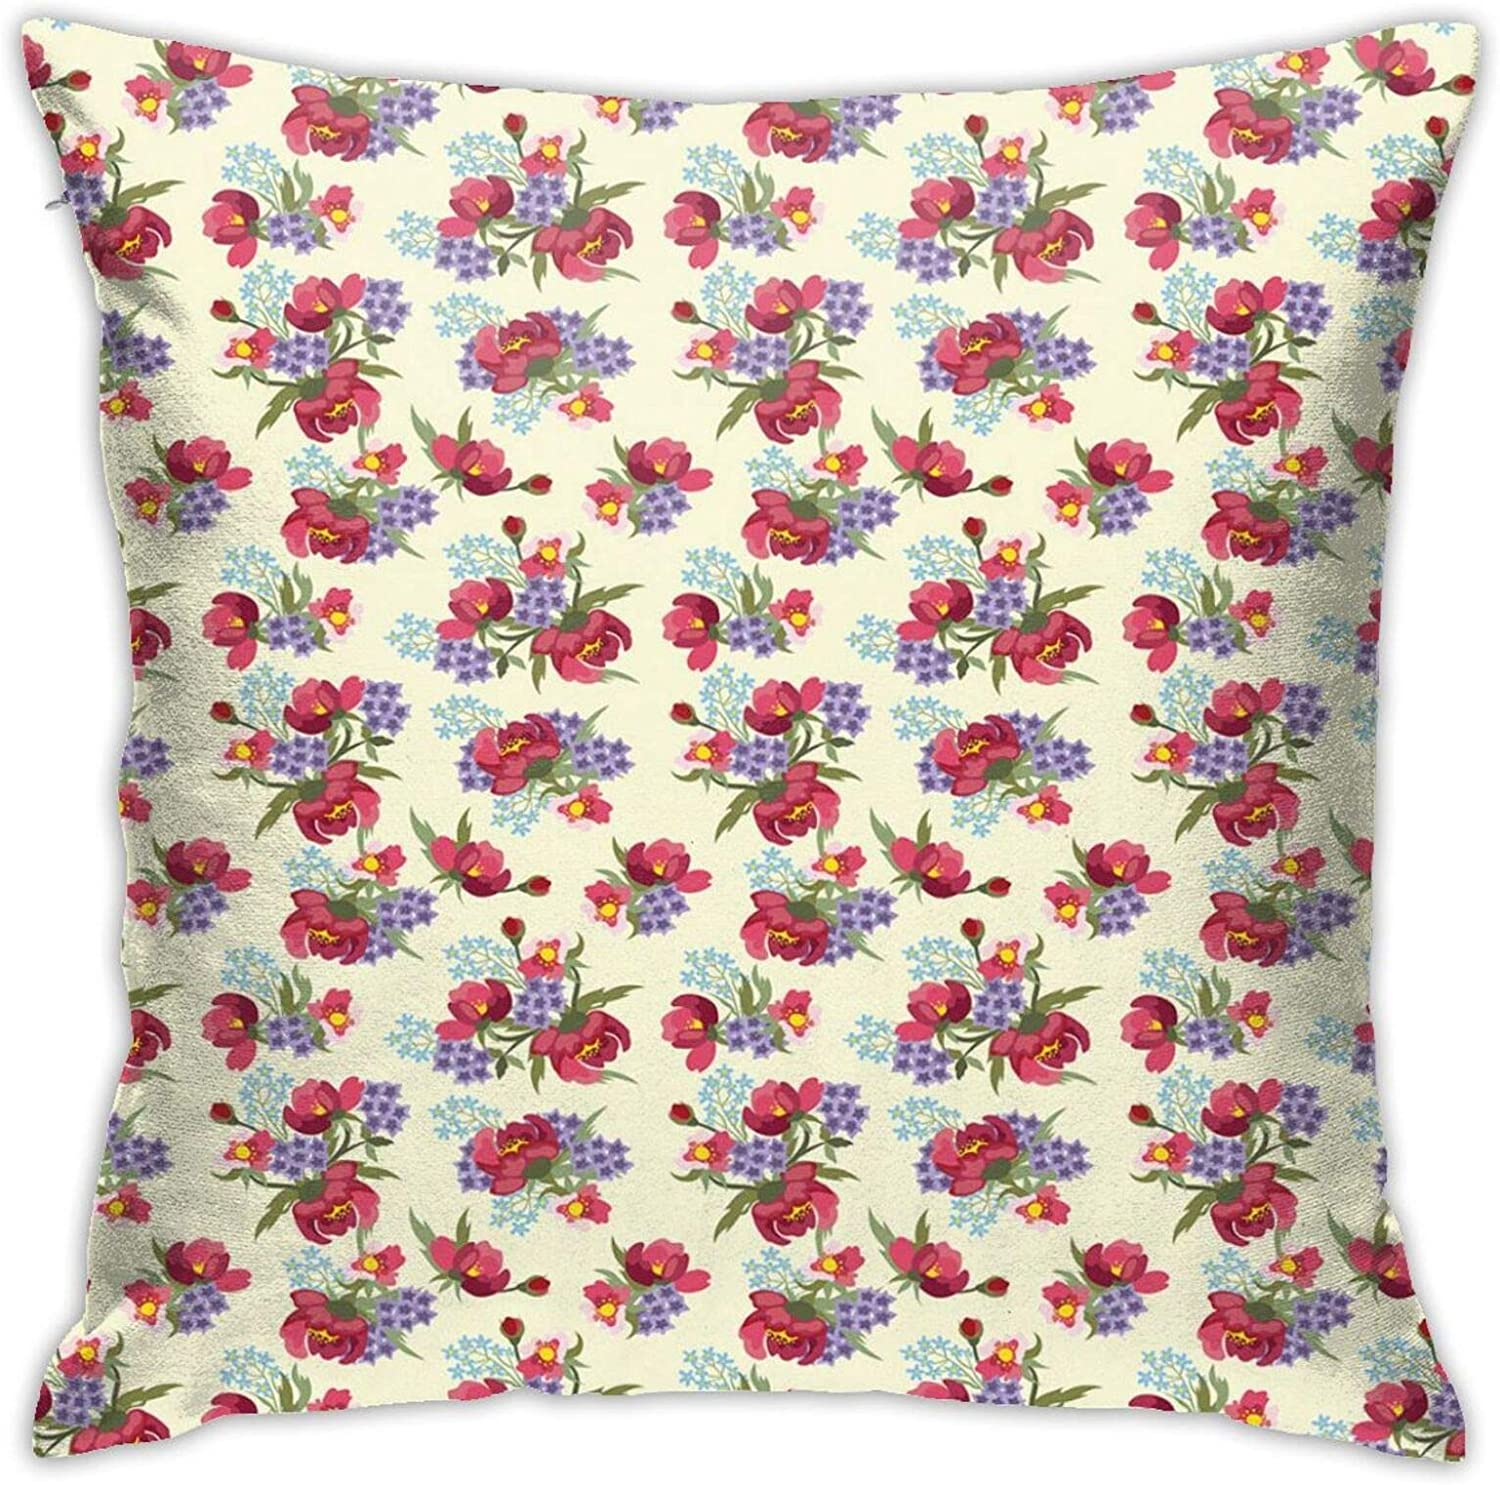 feprena Throw Pillow Cushion Covers Decorative,Flower Branches of Shabby Garden Peony Petunia Blossoms English Garden,Pillow case Cushion Cases for Home Sofa Bedroom,18